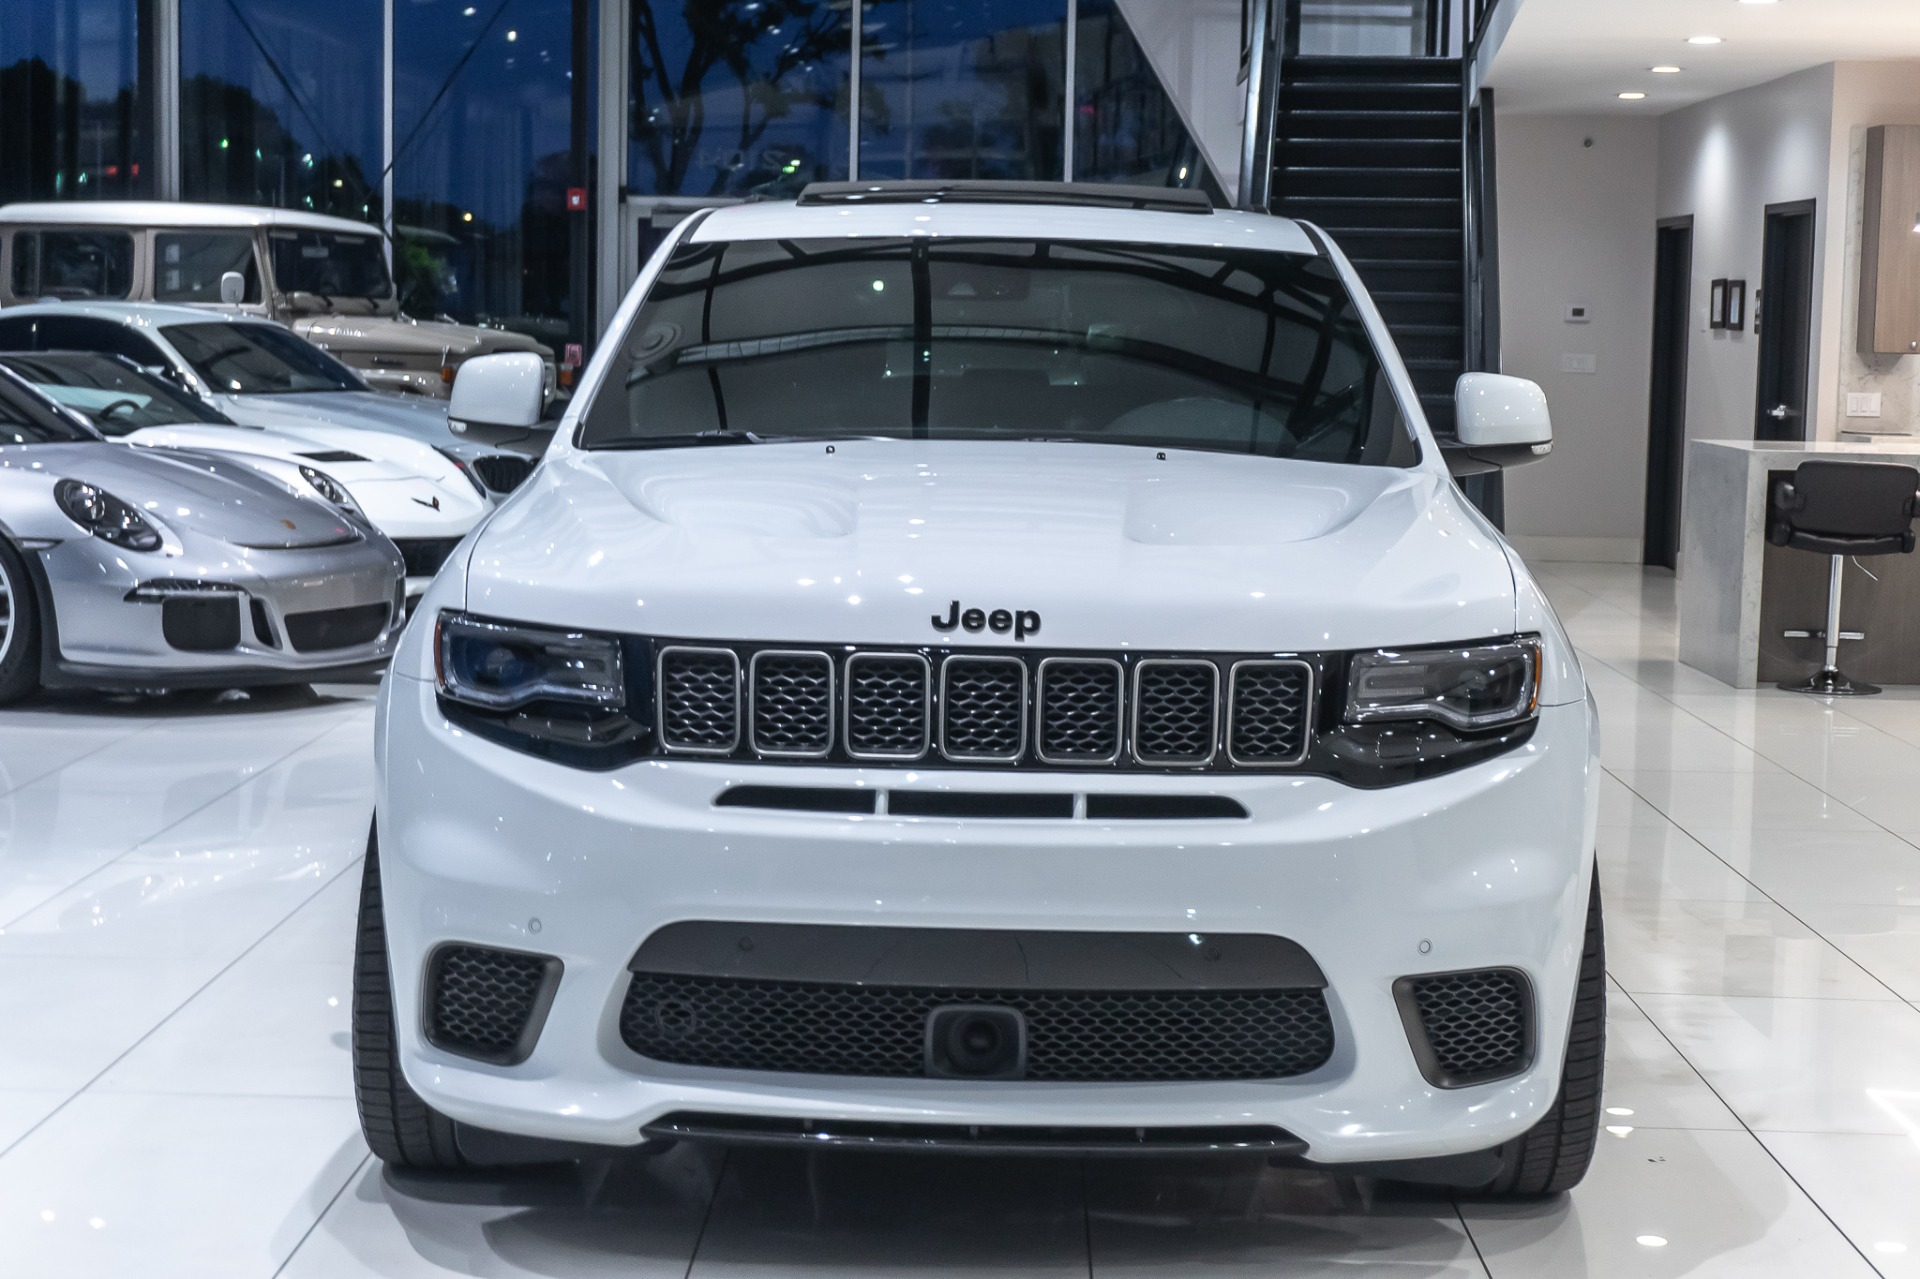 Used-2018-Jeep-Grand-Cherokee-Trackhawk-SUV-Panoramic-Sunroof--High-Performance-Audio